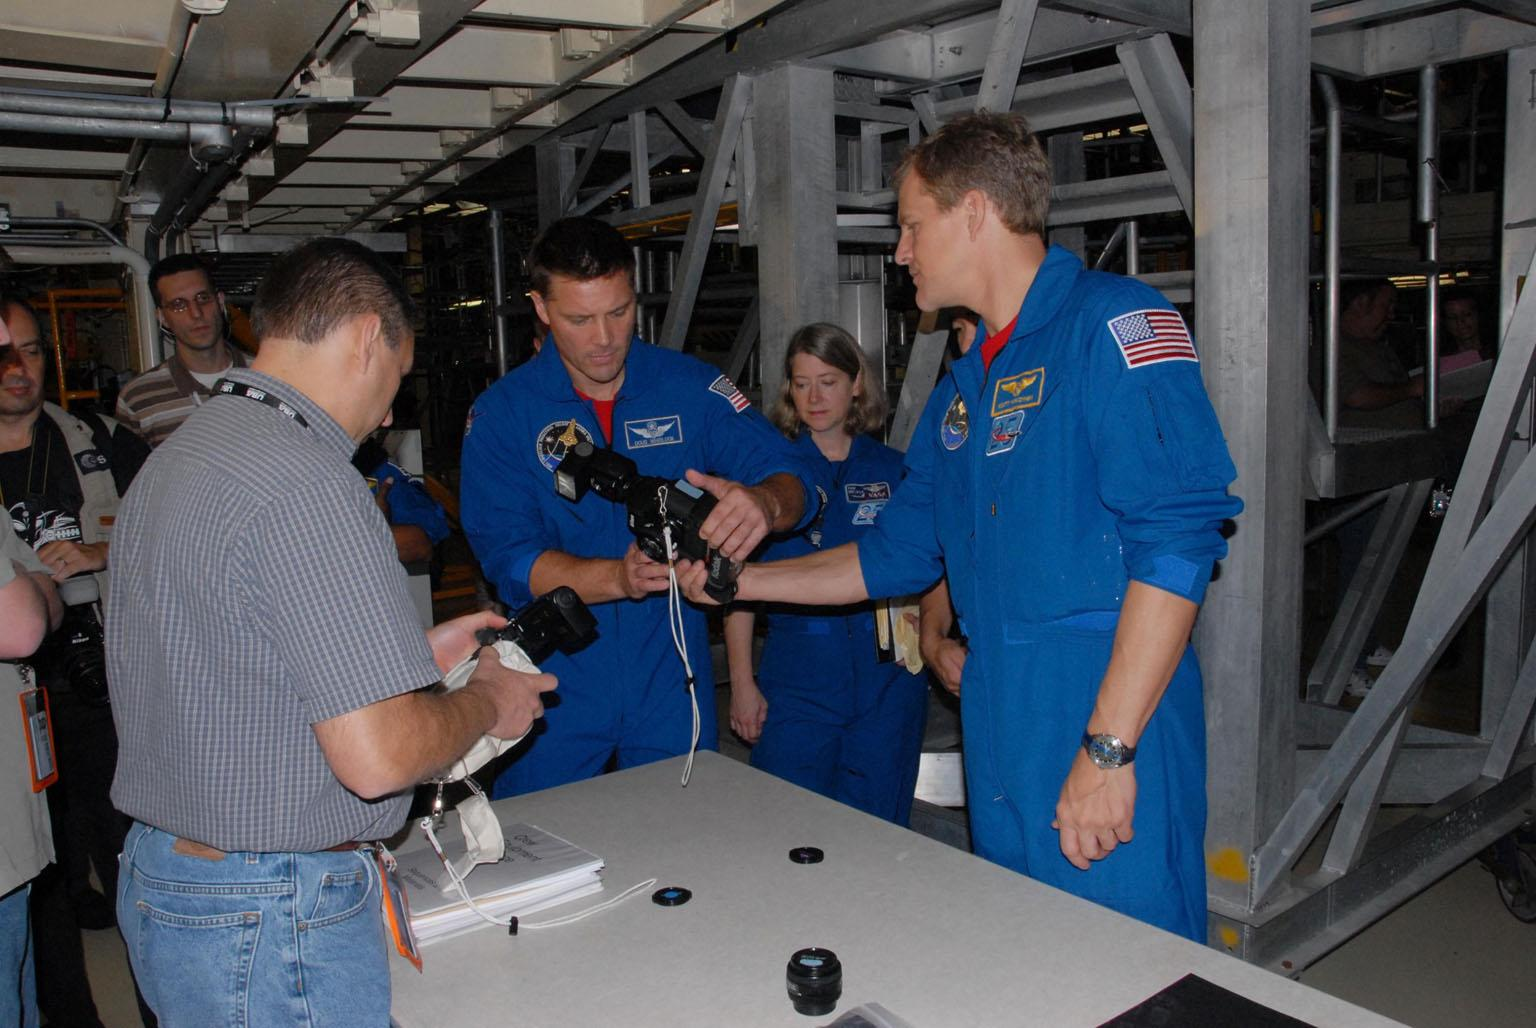 KENNEDY SPACE CENTER, FLA. - The STS-120 crew is at Kennedy for a crew equipment interface test, or CEIT. From left in blue flight suits, STS-120 Mission Specialist Douglas H. Wheelock, Commander Pamela A. Melroy and Mission Specialist Scott E. Parazynski receive instruction in Orbiter Processing Facility bay 3 on the operation of cameras that will fly on their mission. Among the activities standard to a CEIT are harness training, inspection of the thermal protection system and camera operation for planned extravehicular activities, or EVAs. The STS-120 mission will deliver the Harmony module, christened after a school contest, which will provide attachment points for European and Japanese laboratory modules on the International Space Station. Known in technical circles as Node 2, it is similar to the six-sided Unity module that links the U.S. and Russian sections of the station. Built in Italy for the United States, Harmony will be the first new U.S. pressurized component to be added. The STS-120 mission is targeted to launch on Oct. 20. Photo credit: NASA/George Shelton